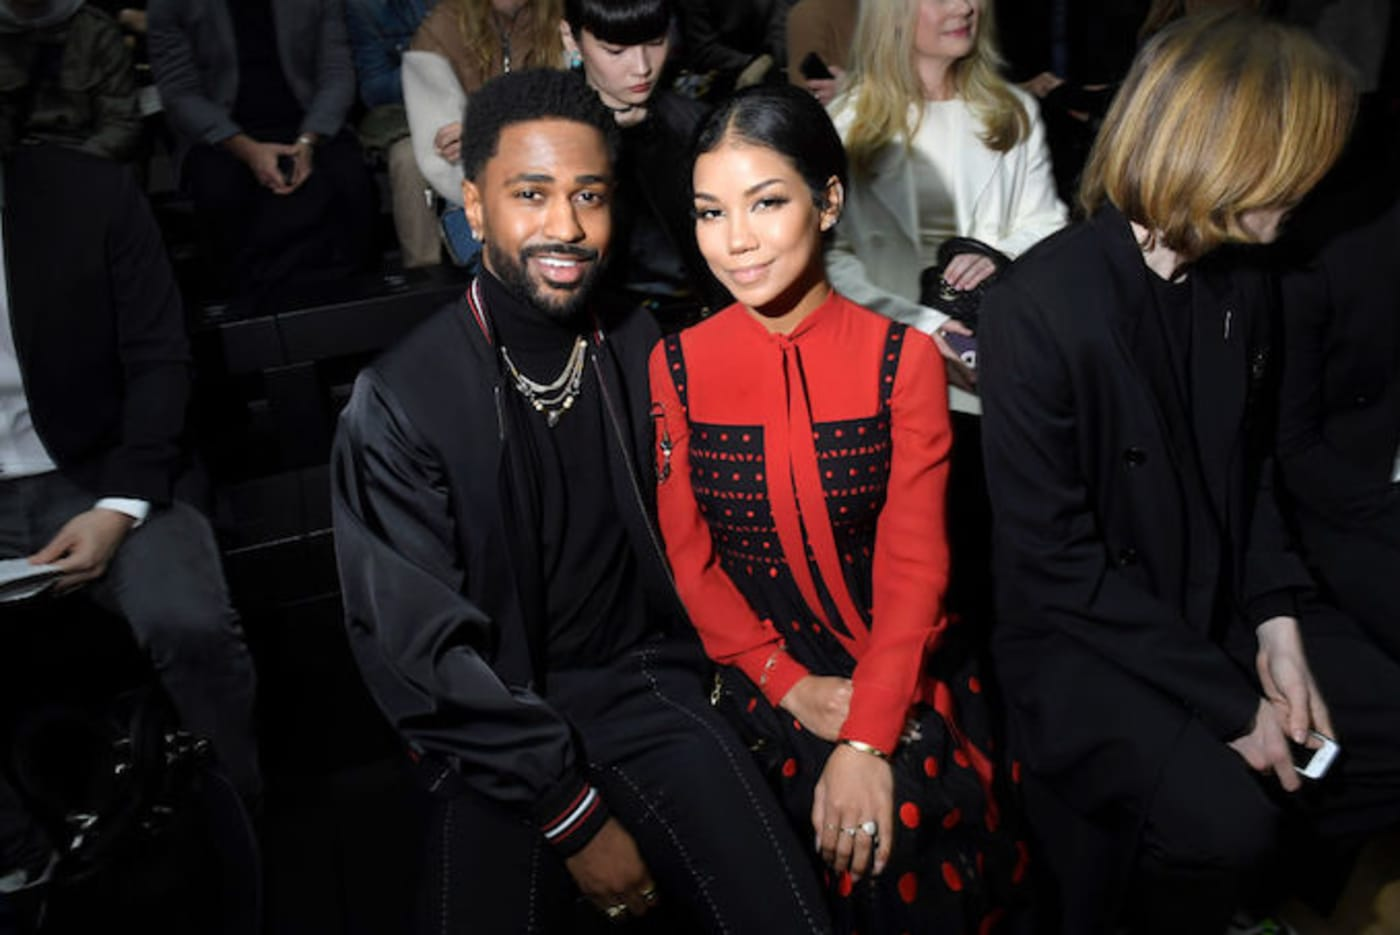 This is a picture of Jhene Aiko.